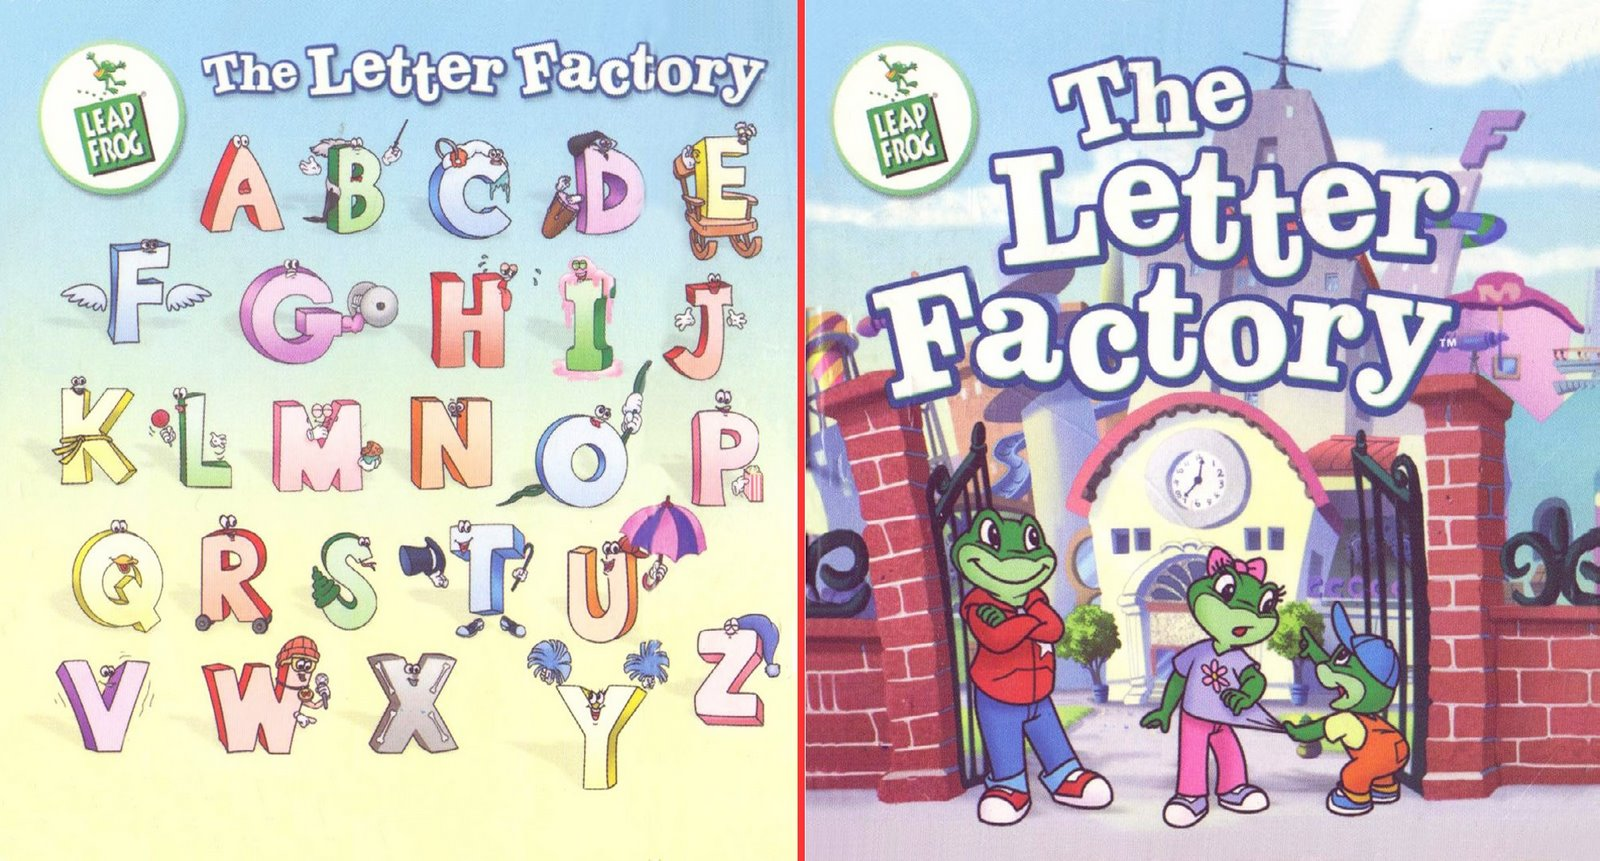 Leapfrog letter factory bed mattress sale for Abc leapfrog letter factory